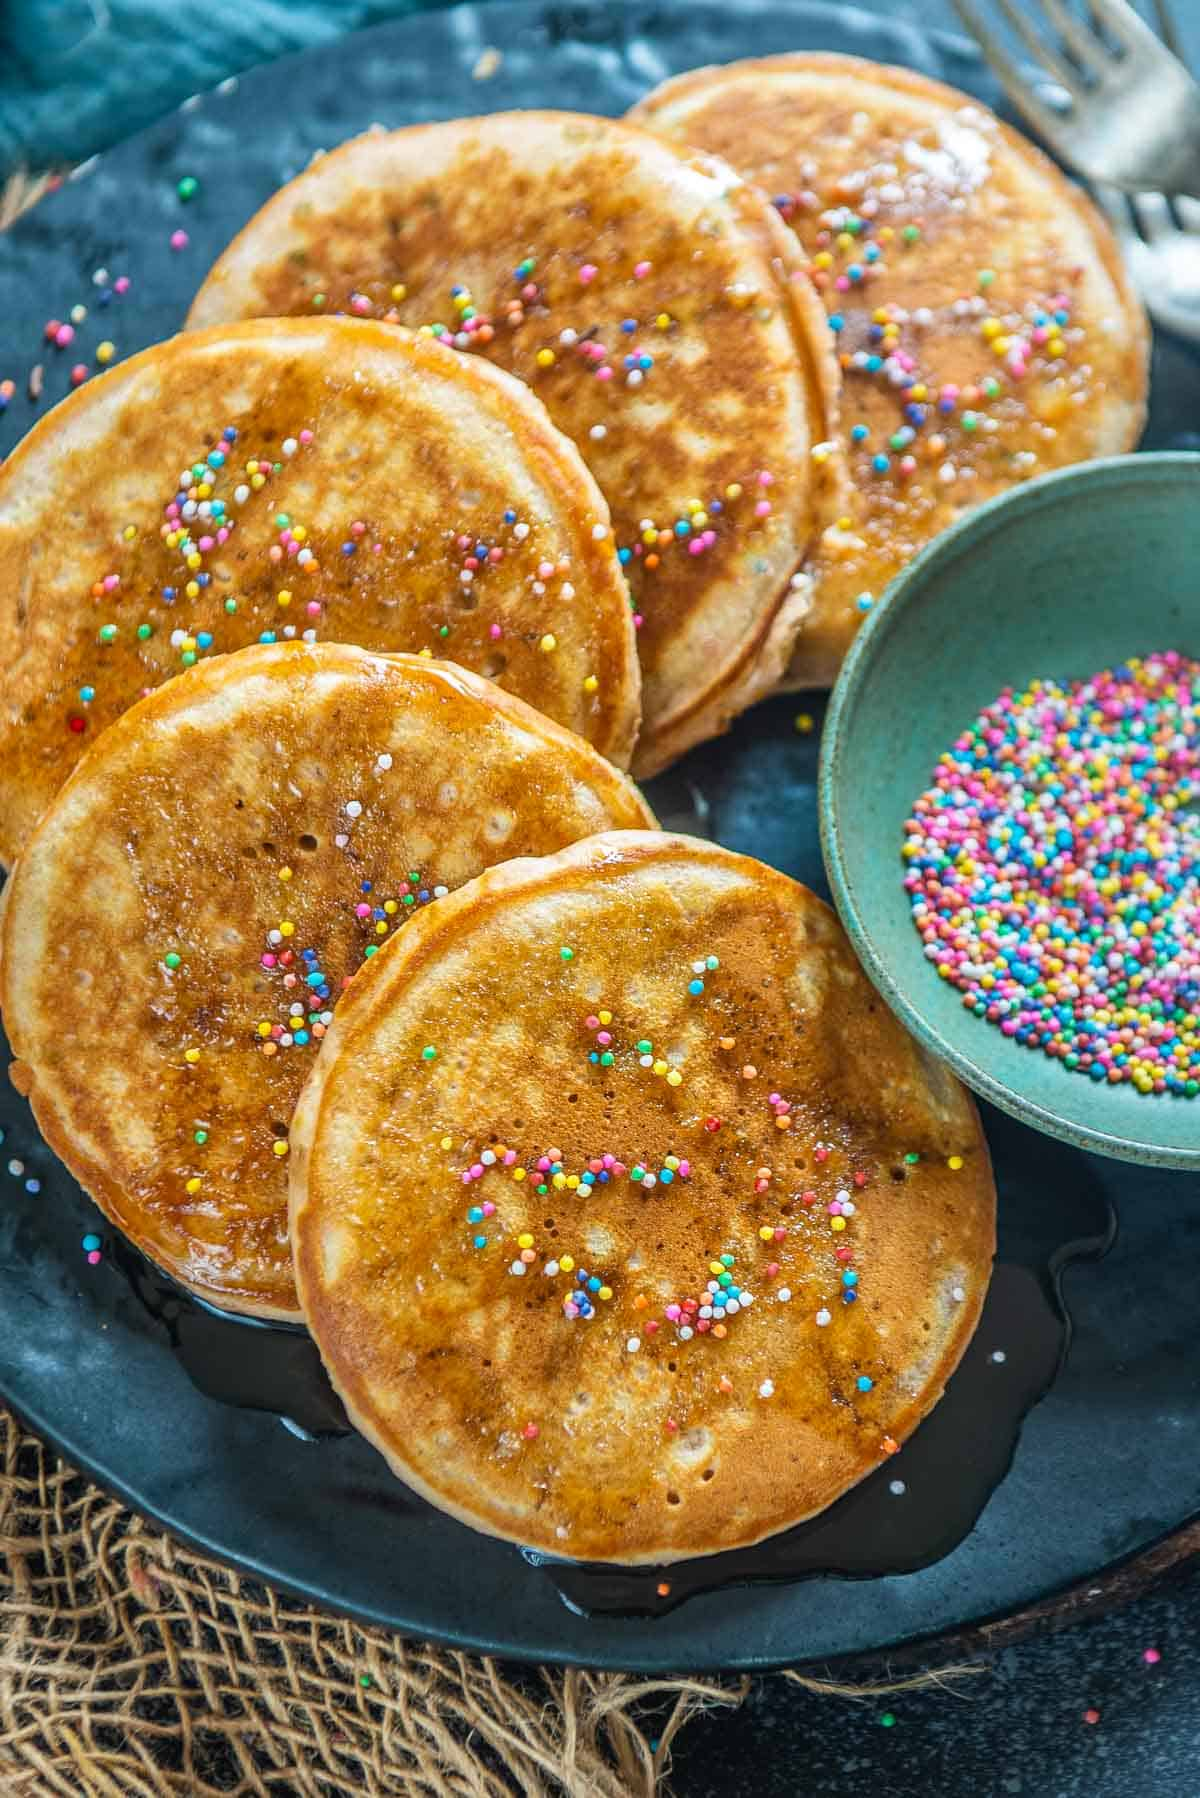 Funfetti pancakes served on a plate.